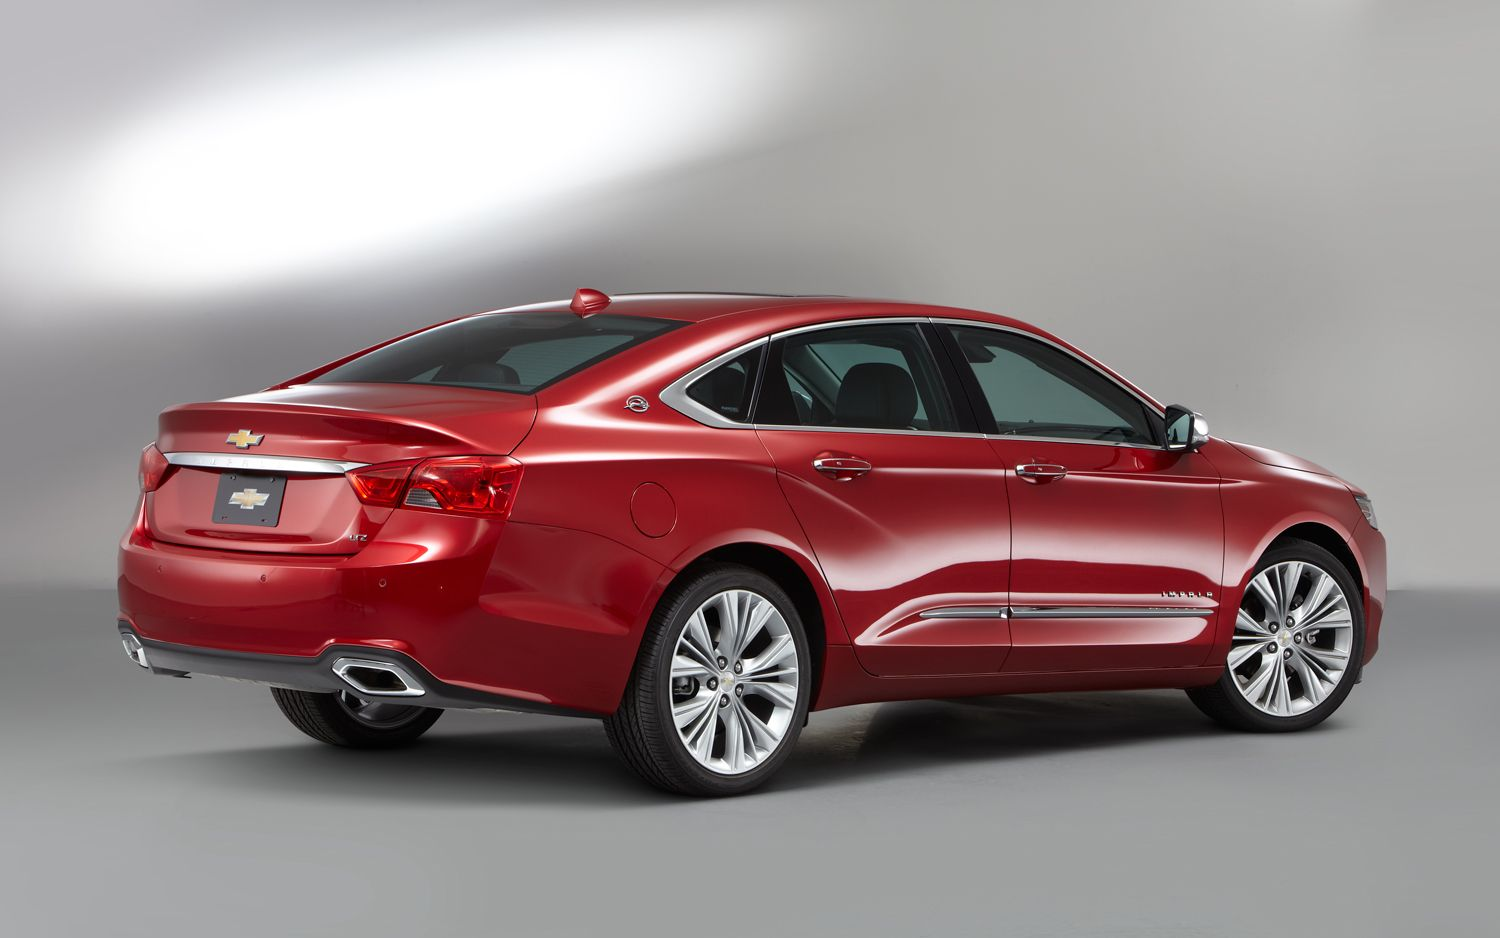 About The All New 2017 Chevrolet Impala